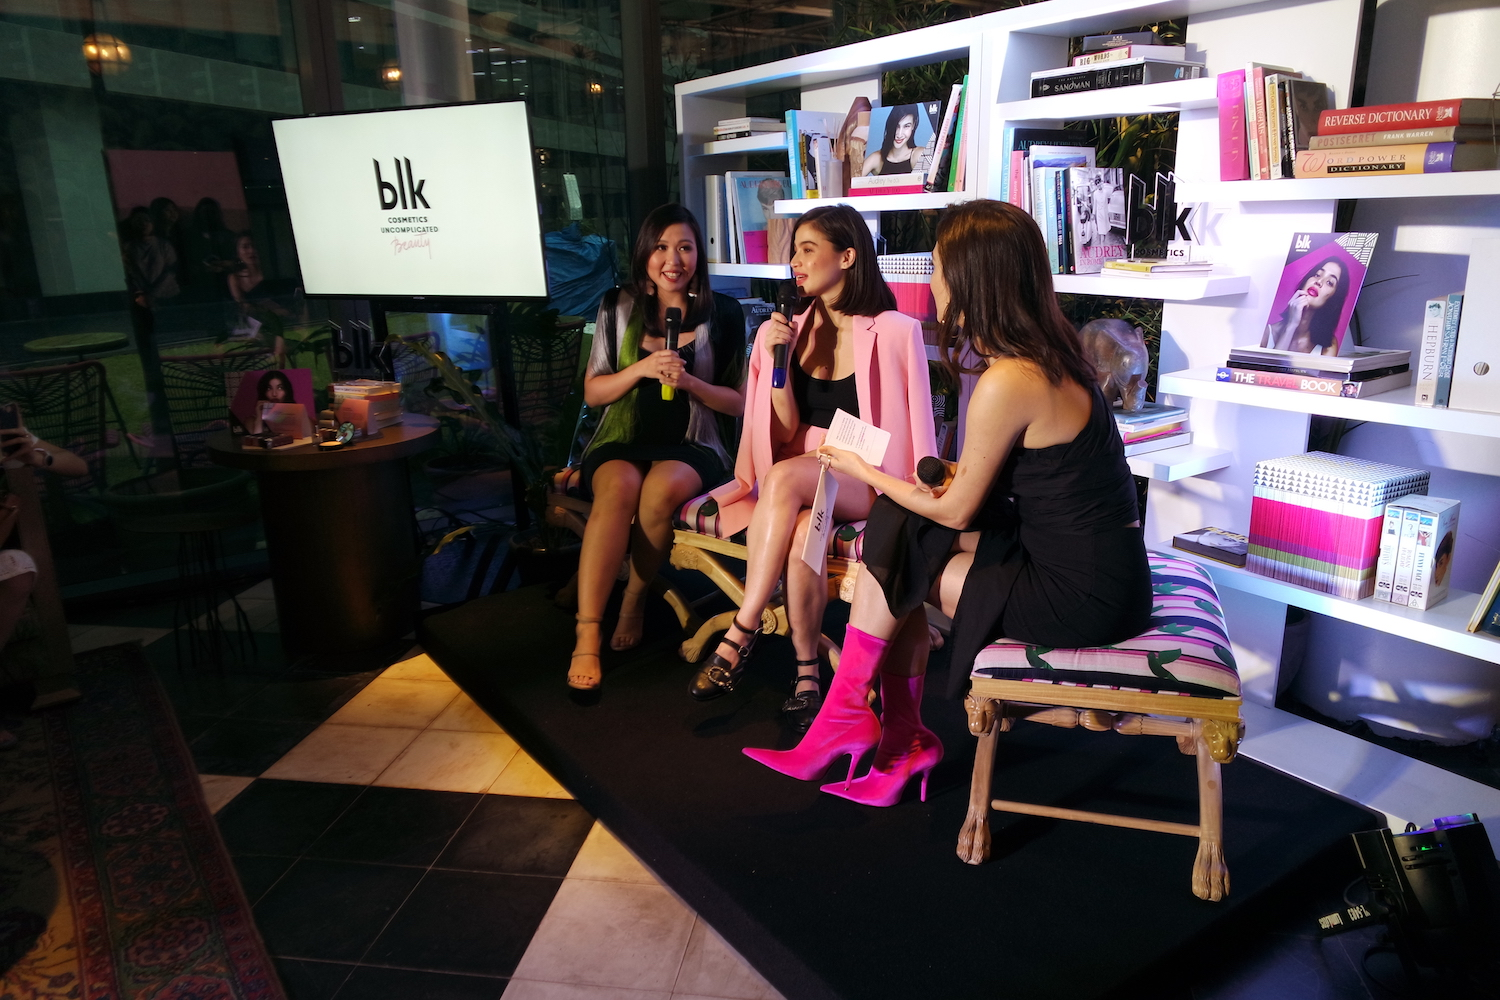 Jacque Yuengtian-Gutierrez and Anne Curtis tell Nicole Andersson the story behind blk cosmetics